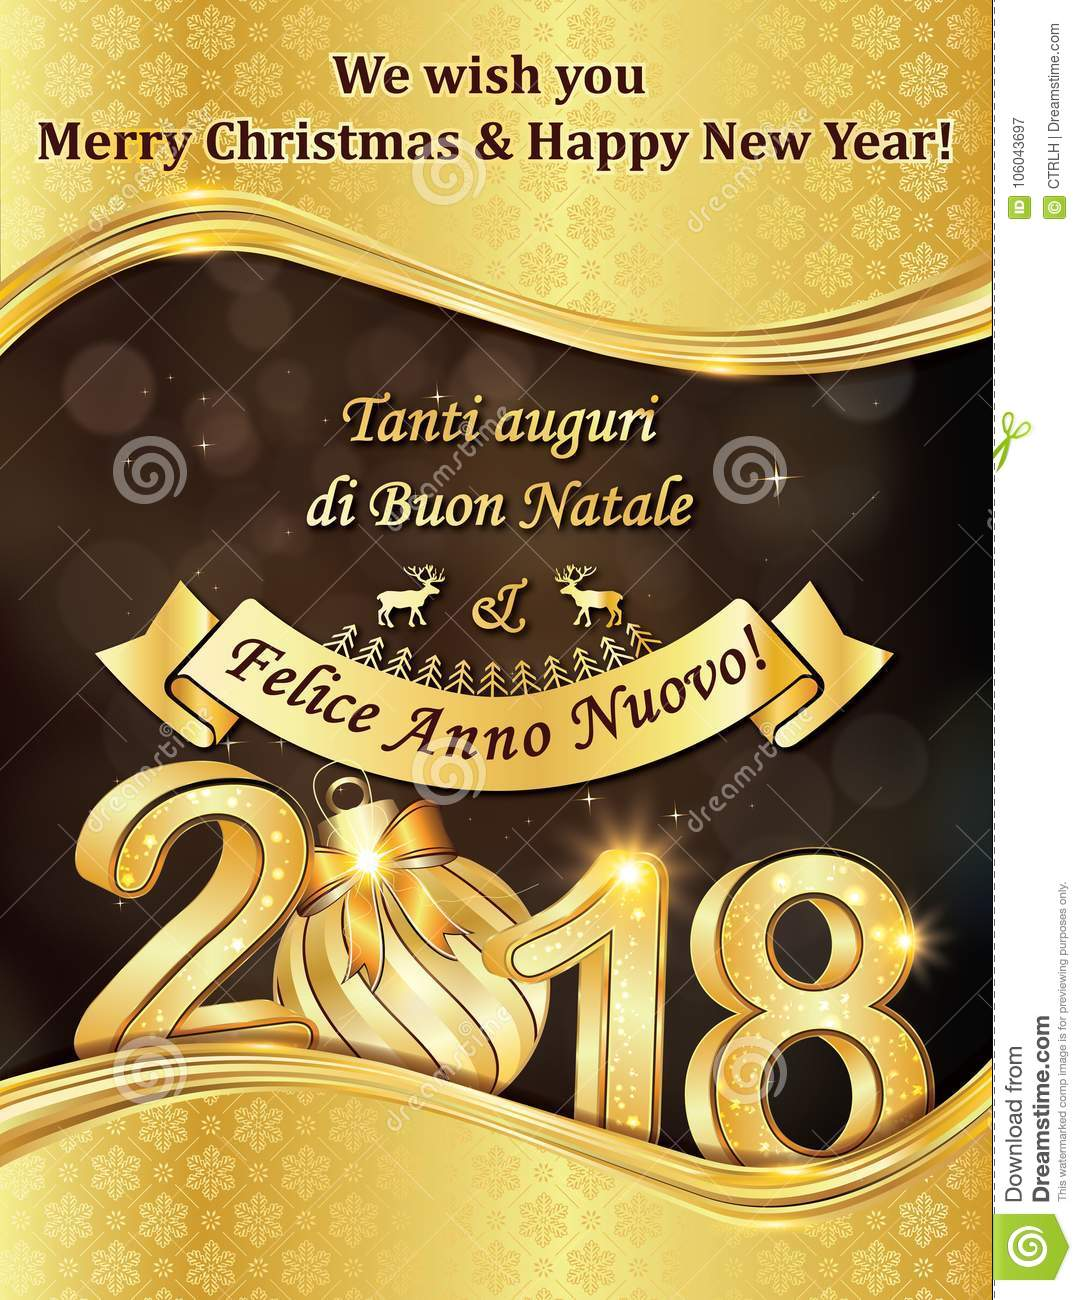 Elegant Winter Holiday Greeting Card With Text In Italian And